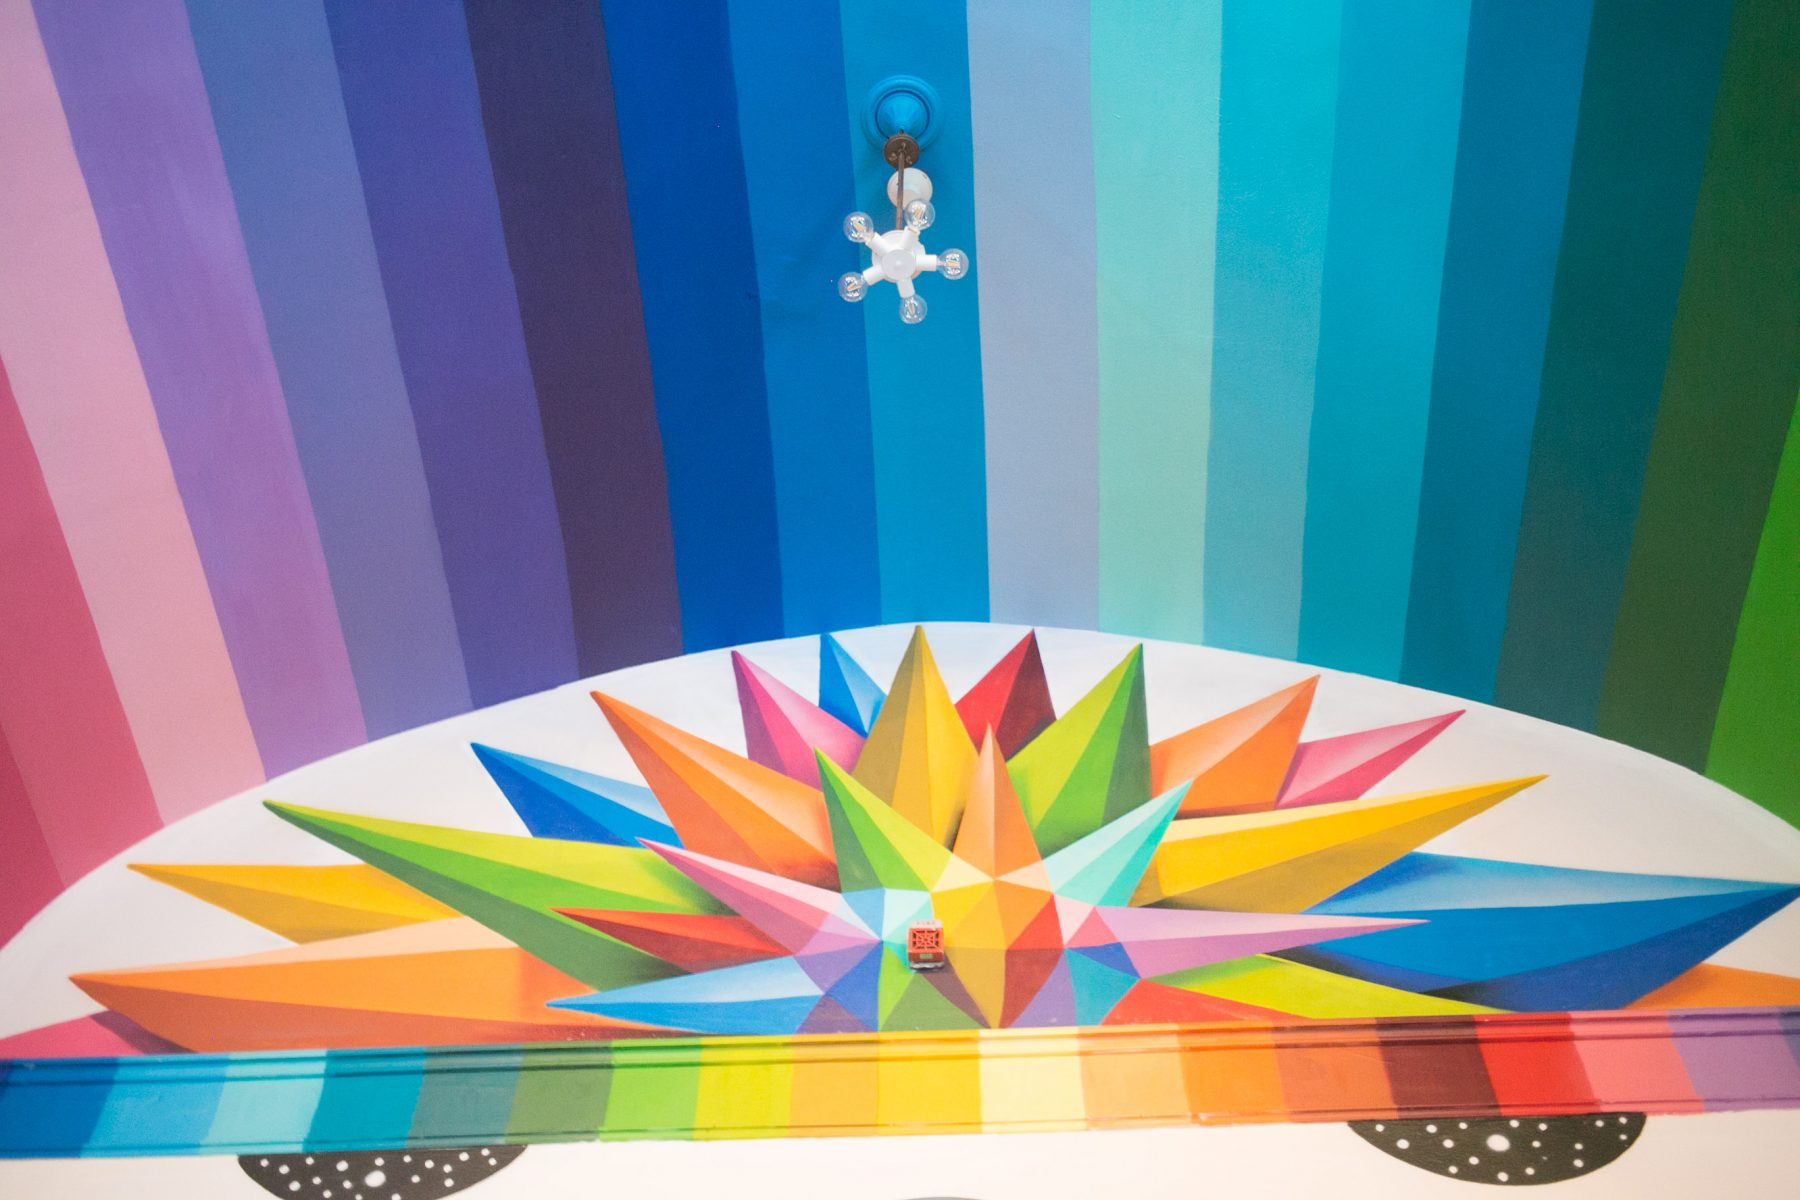 Okuda's Divinitory International Church of Cannabis mural